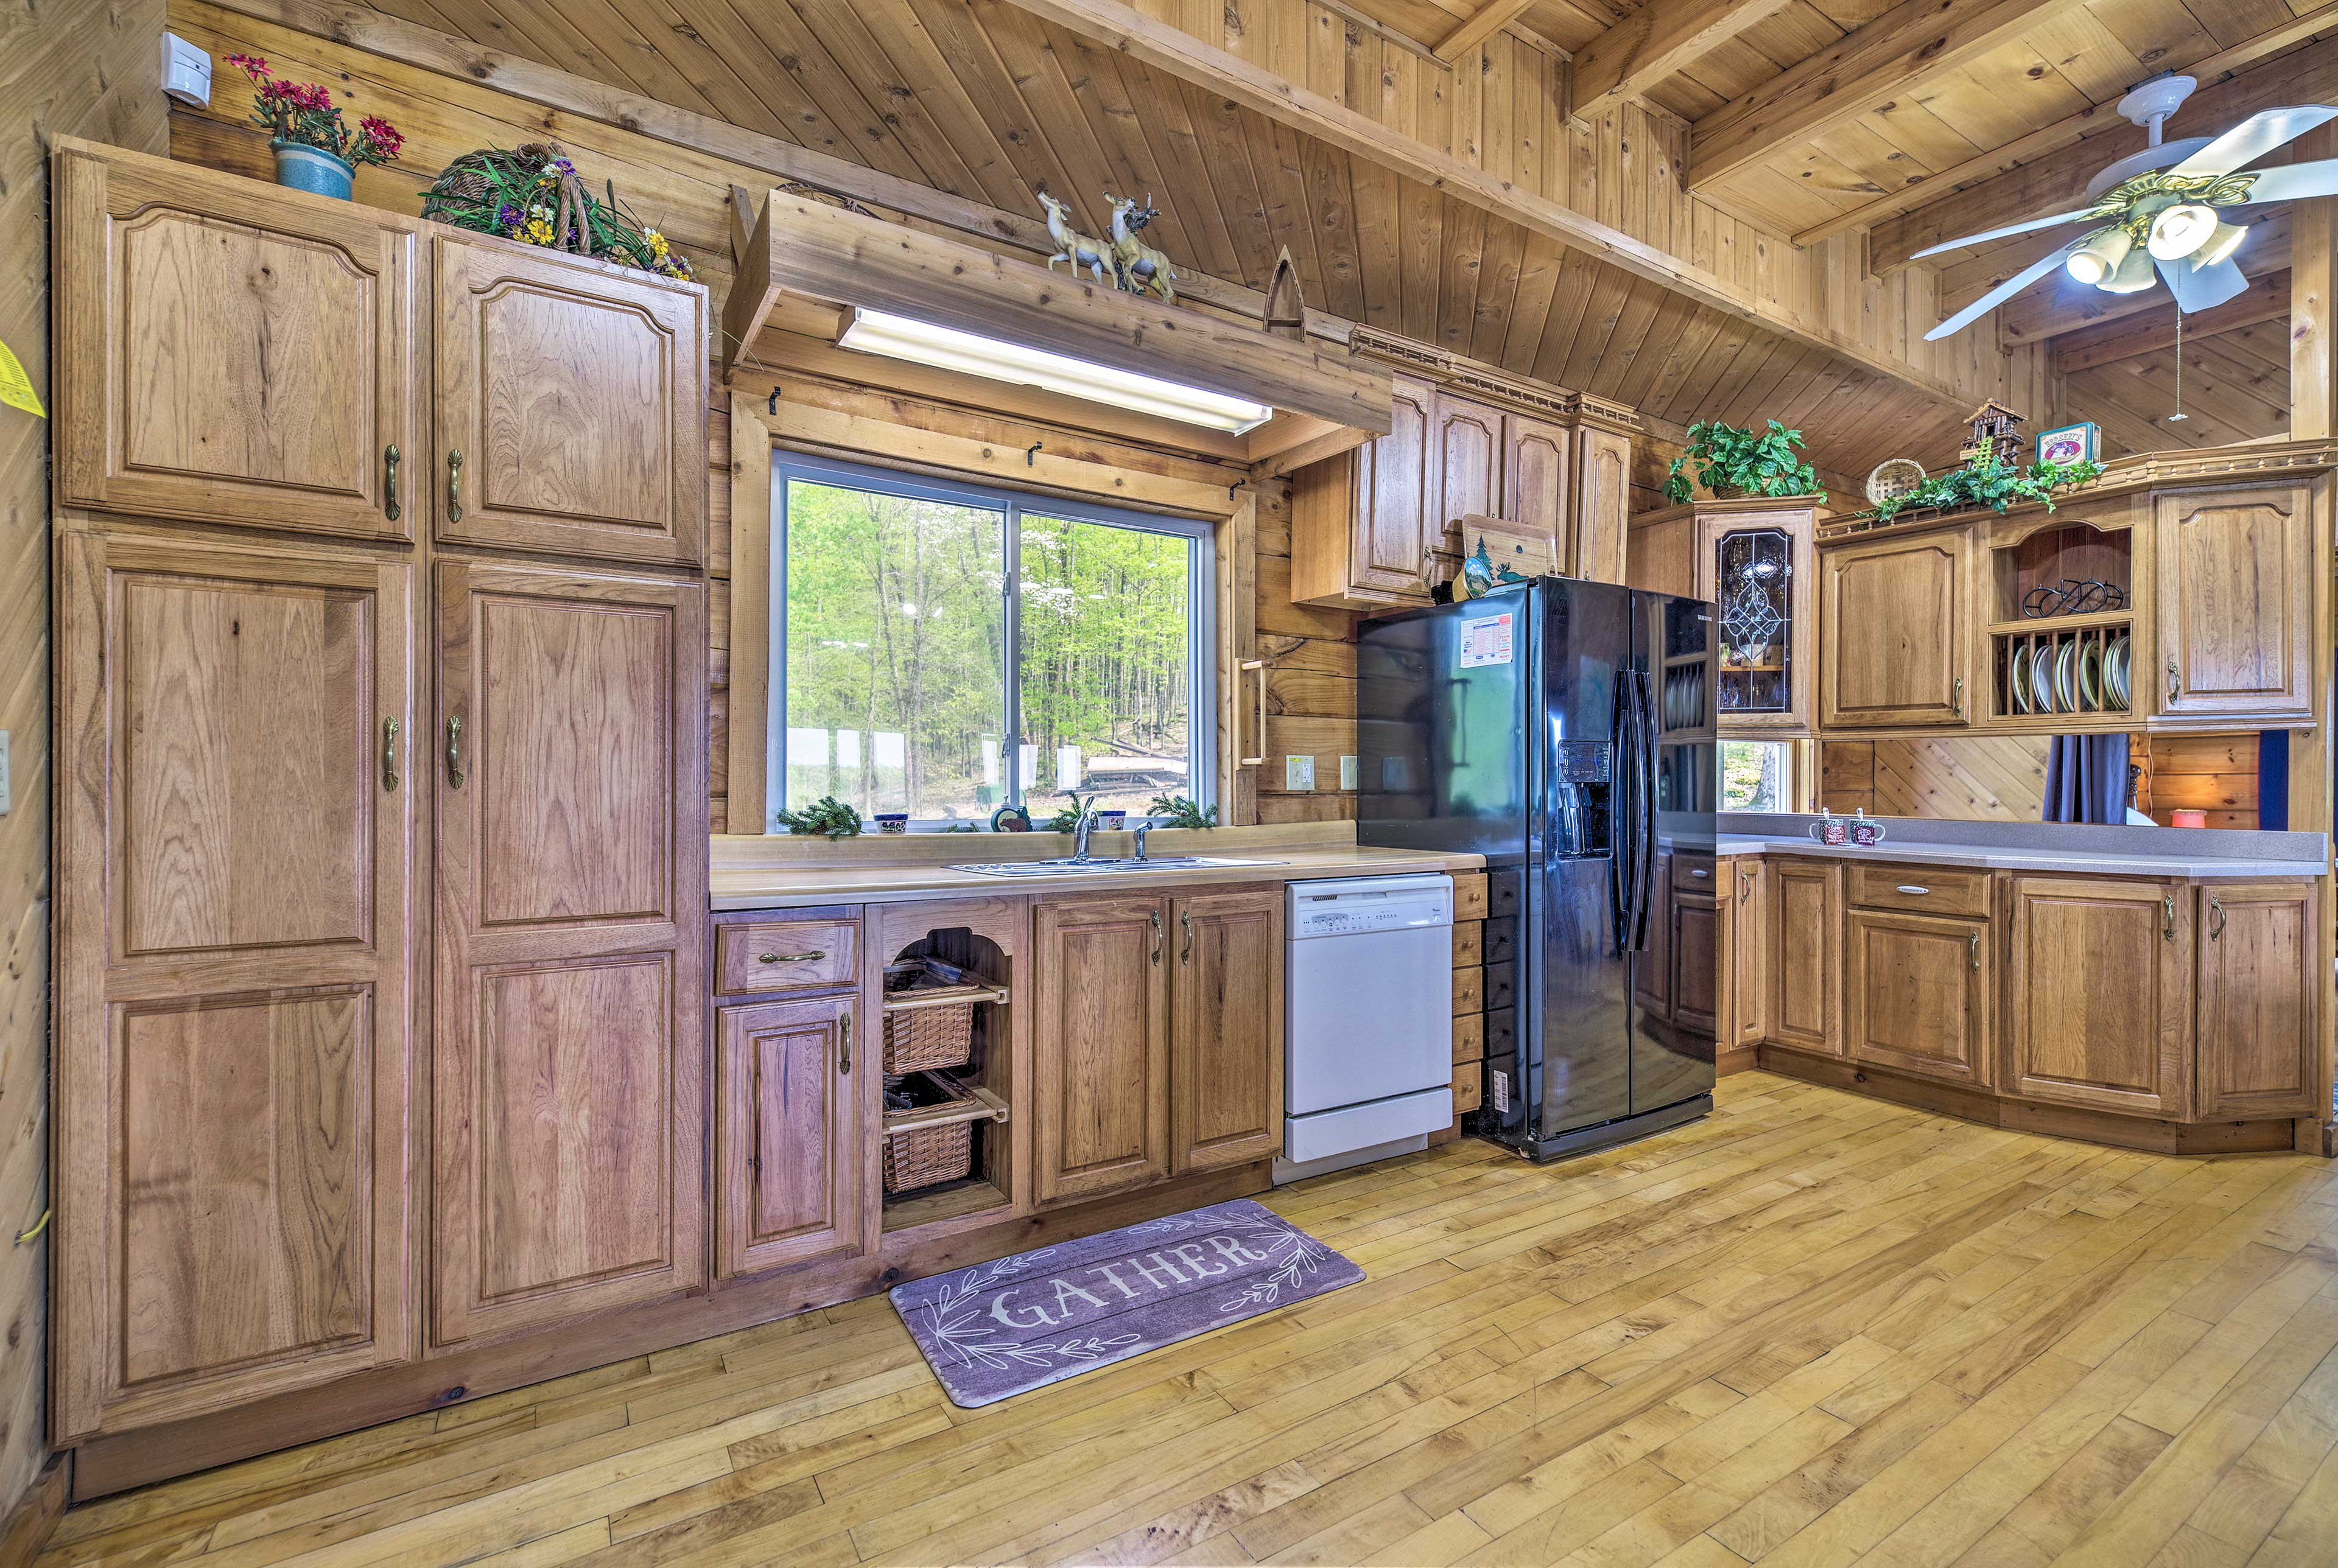 There are 2 full kitchens in the cabin.